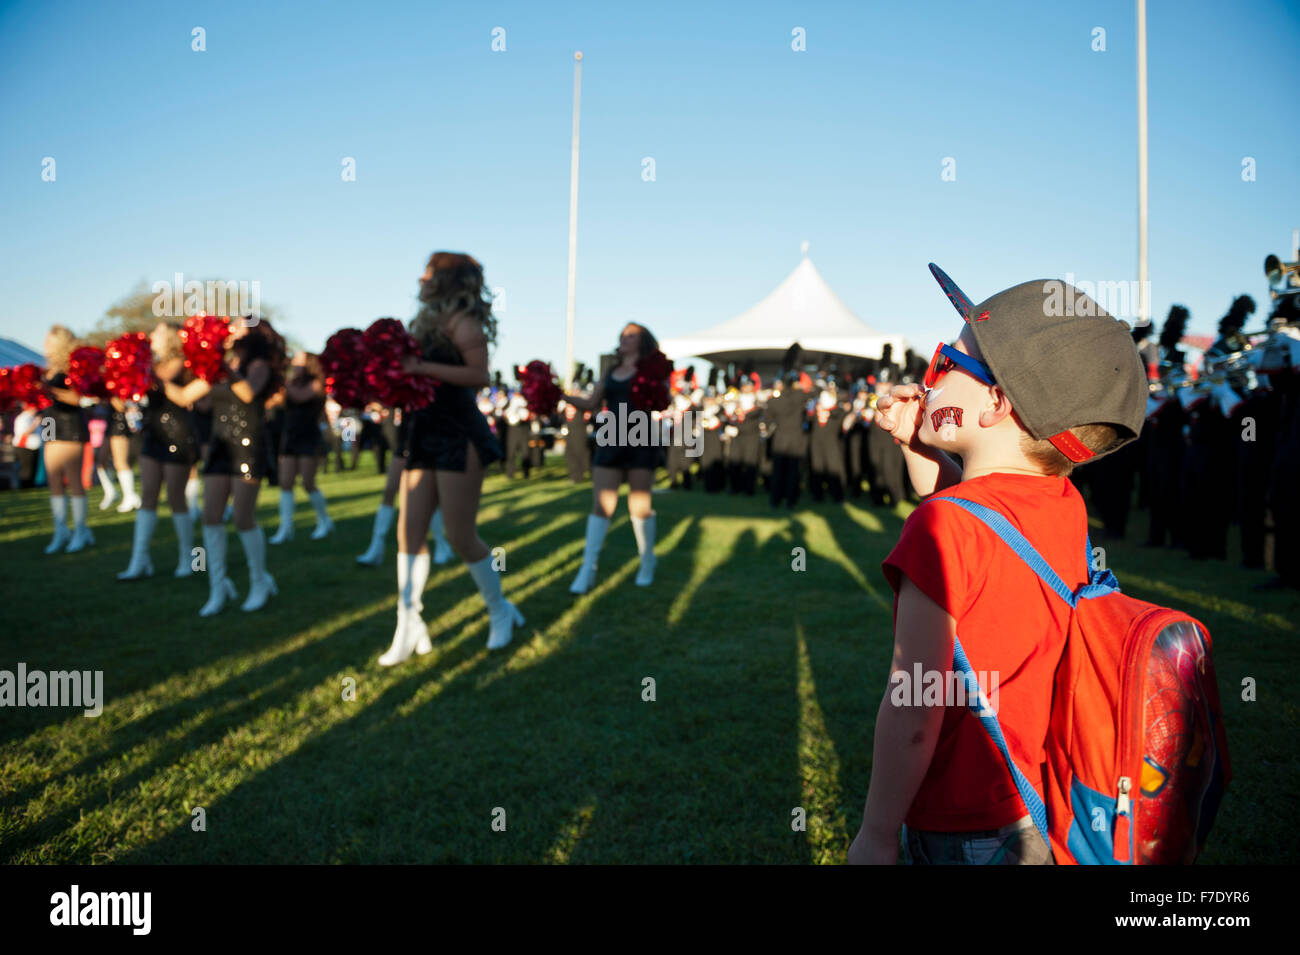 A young boy watching the UNLV (University of Las Vegas) Rebels Cheerleaders at a Rebels Football pre-game event - Stock Image